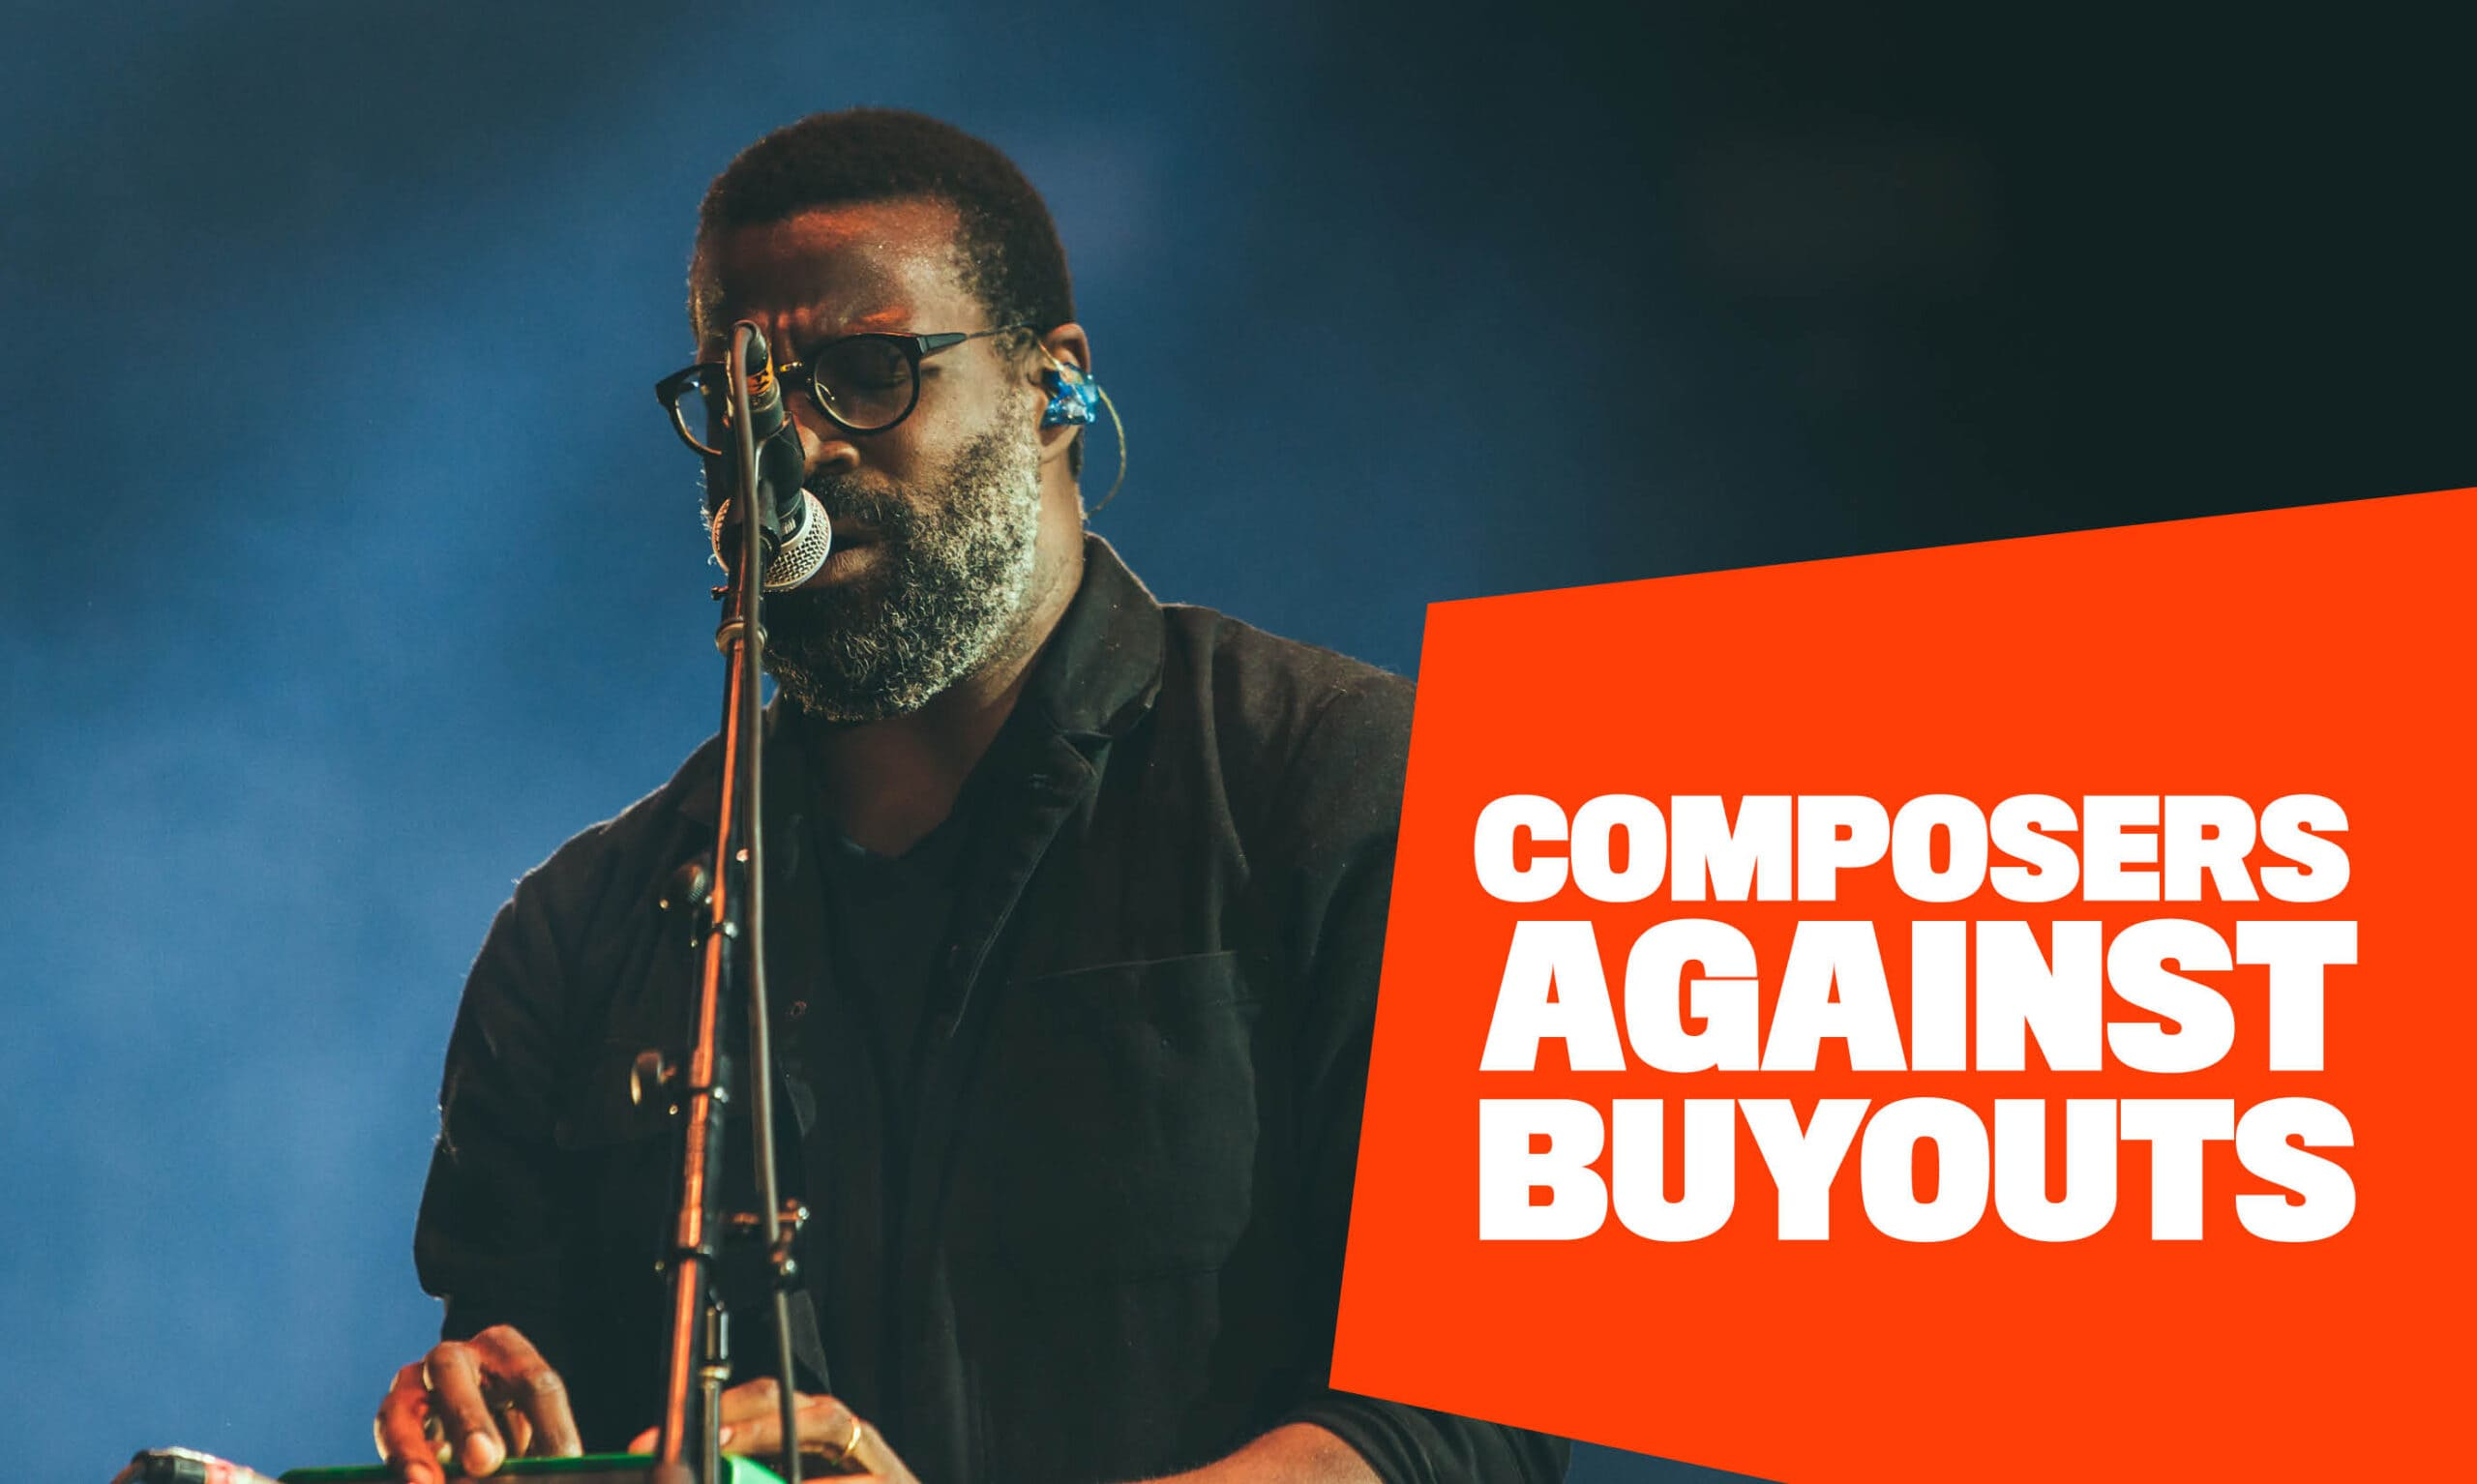 Composers Against Buyouts